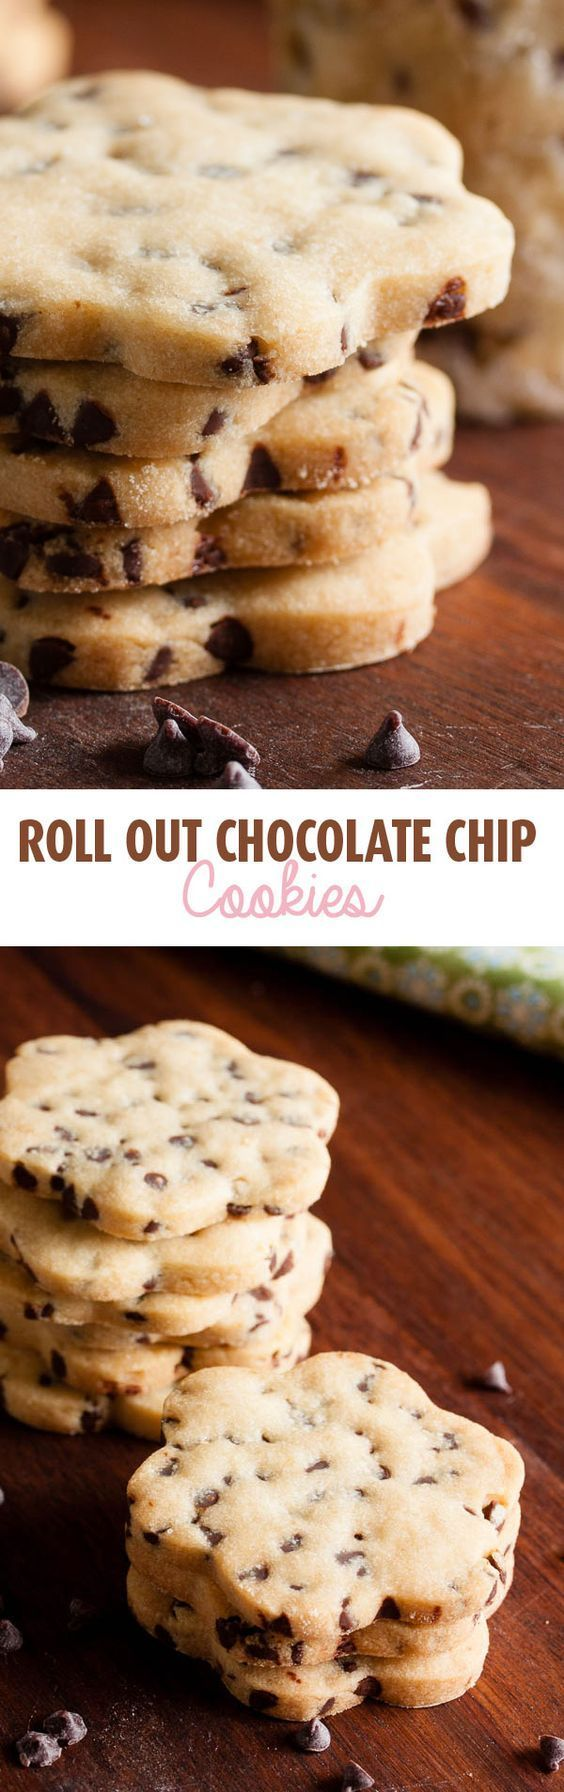 88 Best Cookies Dough Images On Pinterest Baking And Chocochips Elaine Dress Cream Beige M Roll Out Chocolate Chip